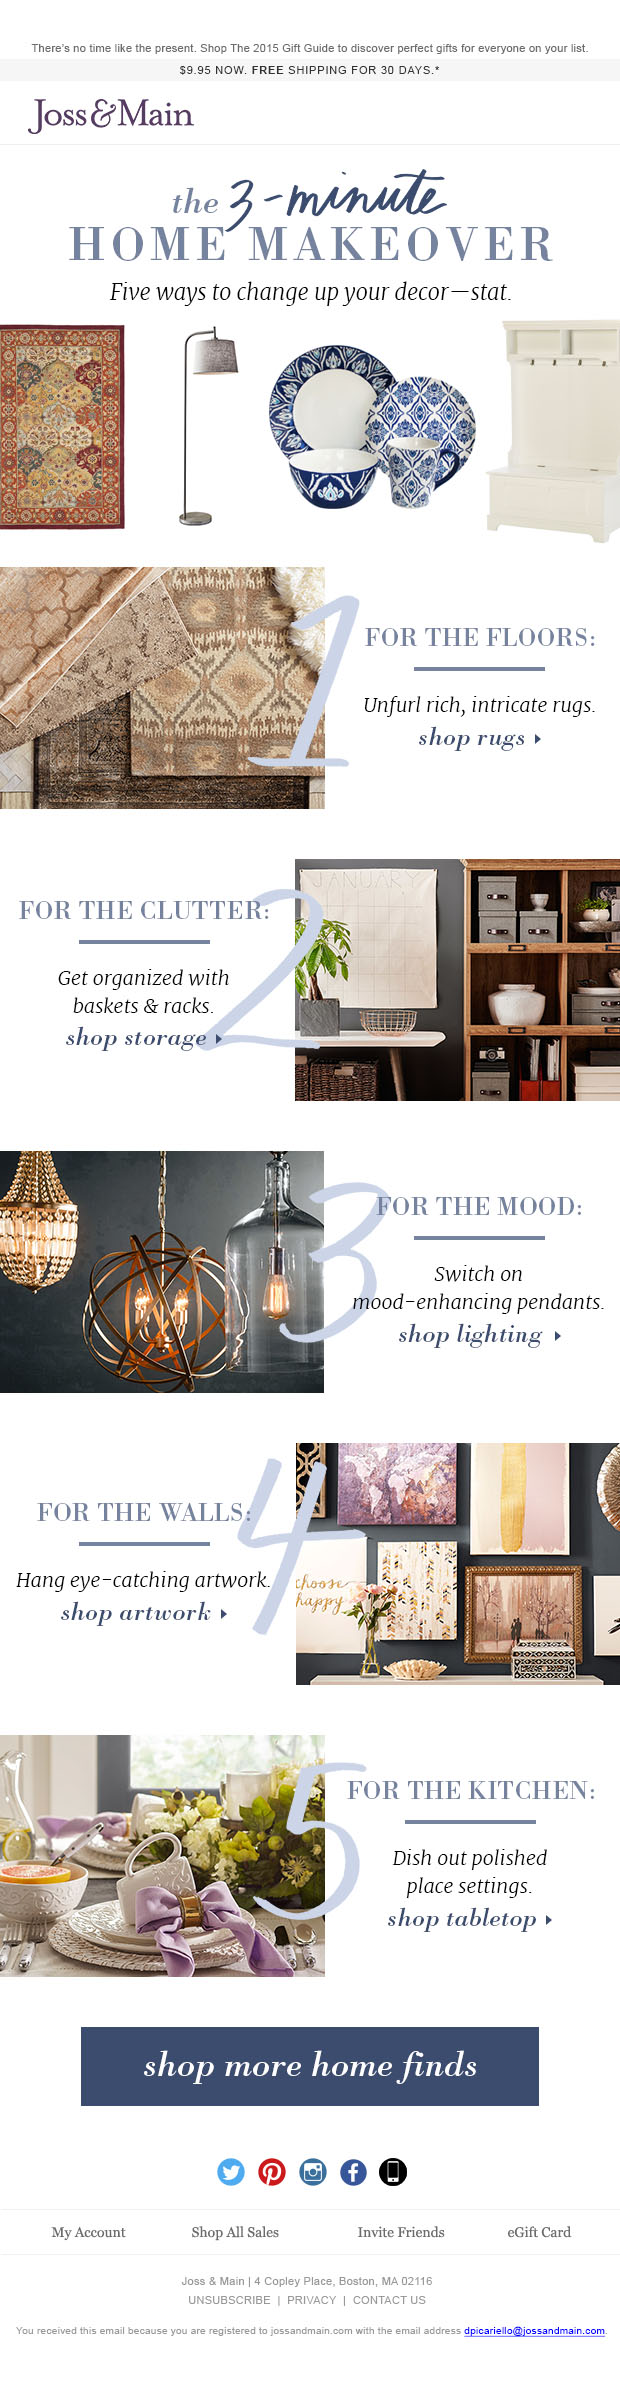 Home Makeover Email